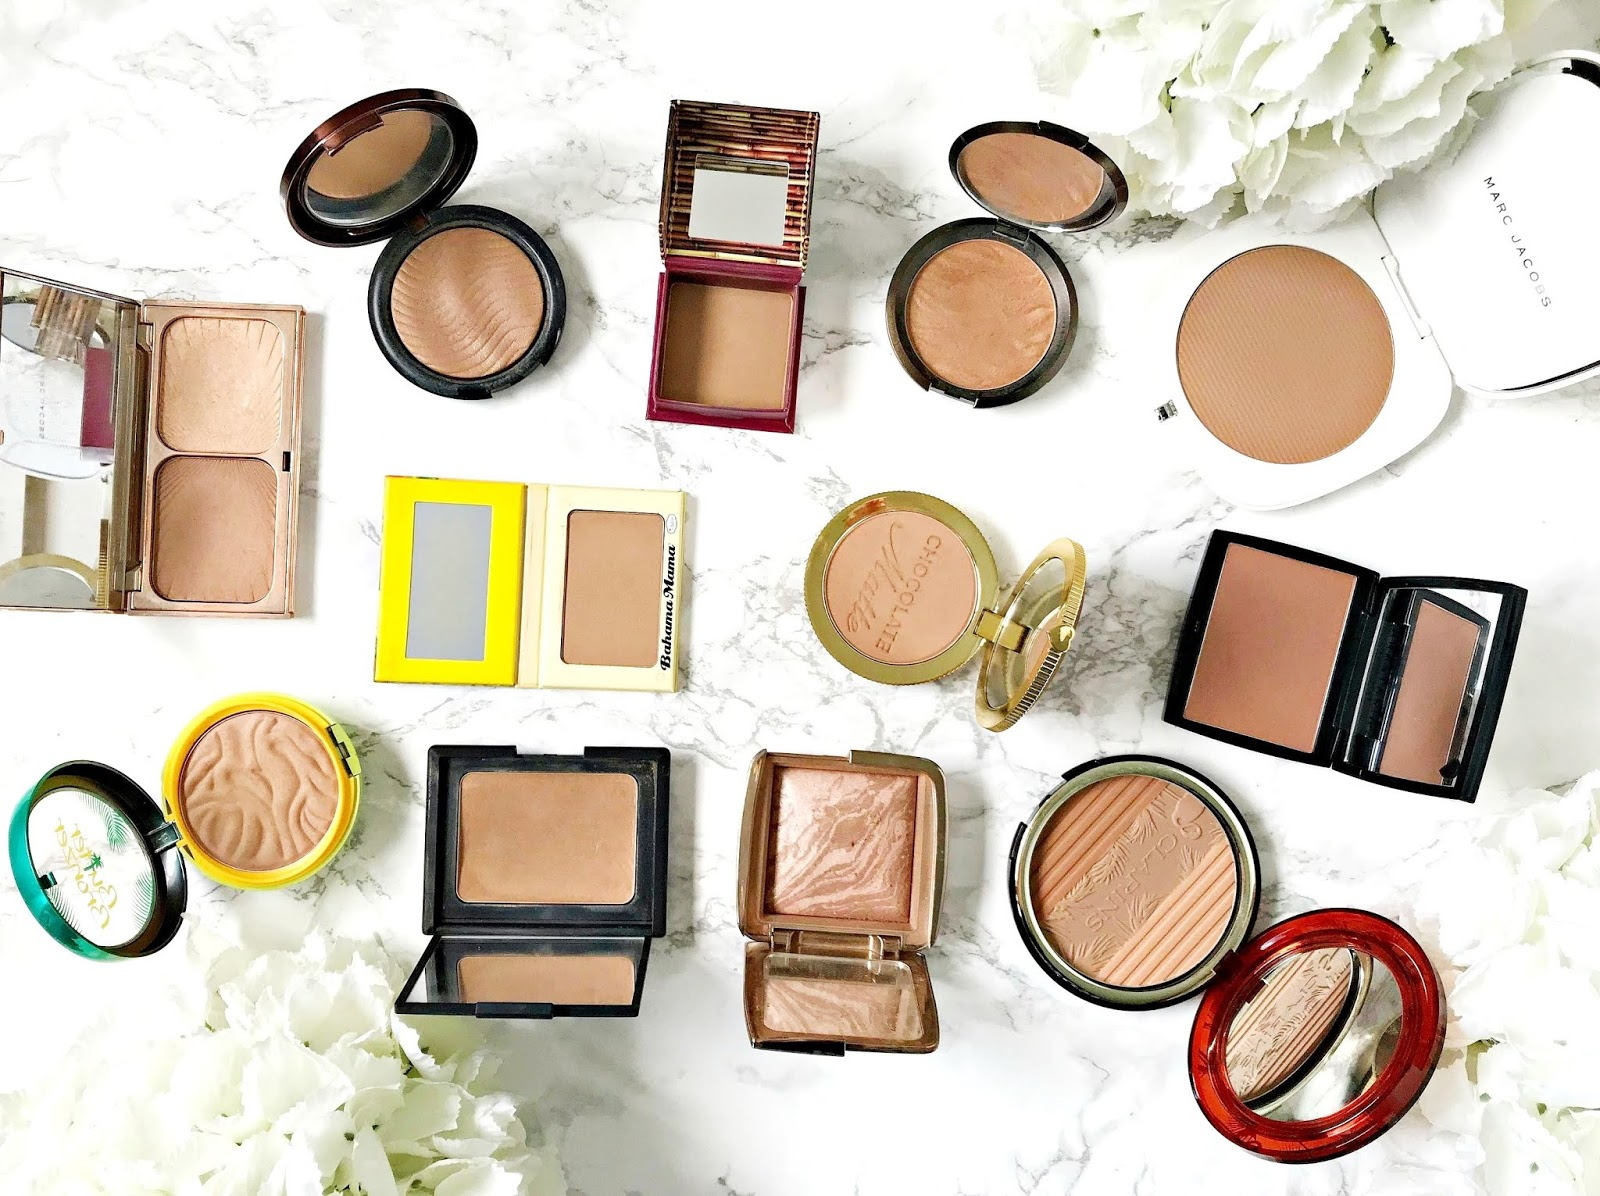 The Bronzer Edit: Bronzer, Nars Laguna, Benefit Hoola, Make Up For Ever Pro Bronze Fusion, Becca Sunlit Bronzer, Marc Jacobs O'Mega Bronzer, Anastasia Beverly Hills Tawny Bronzer, Too Faced Chocolate Soleil, theBalm Bahama Mama, Charlotte Tilbury Filmstar Bronze & Glow,